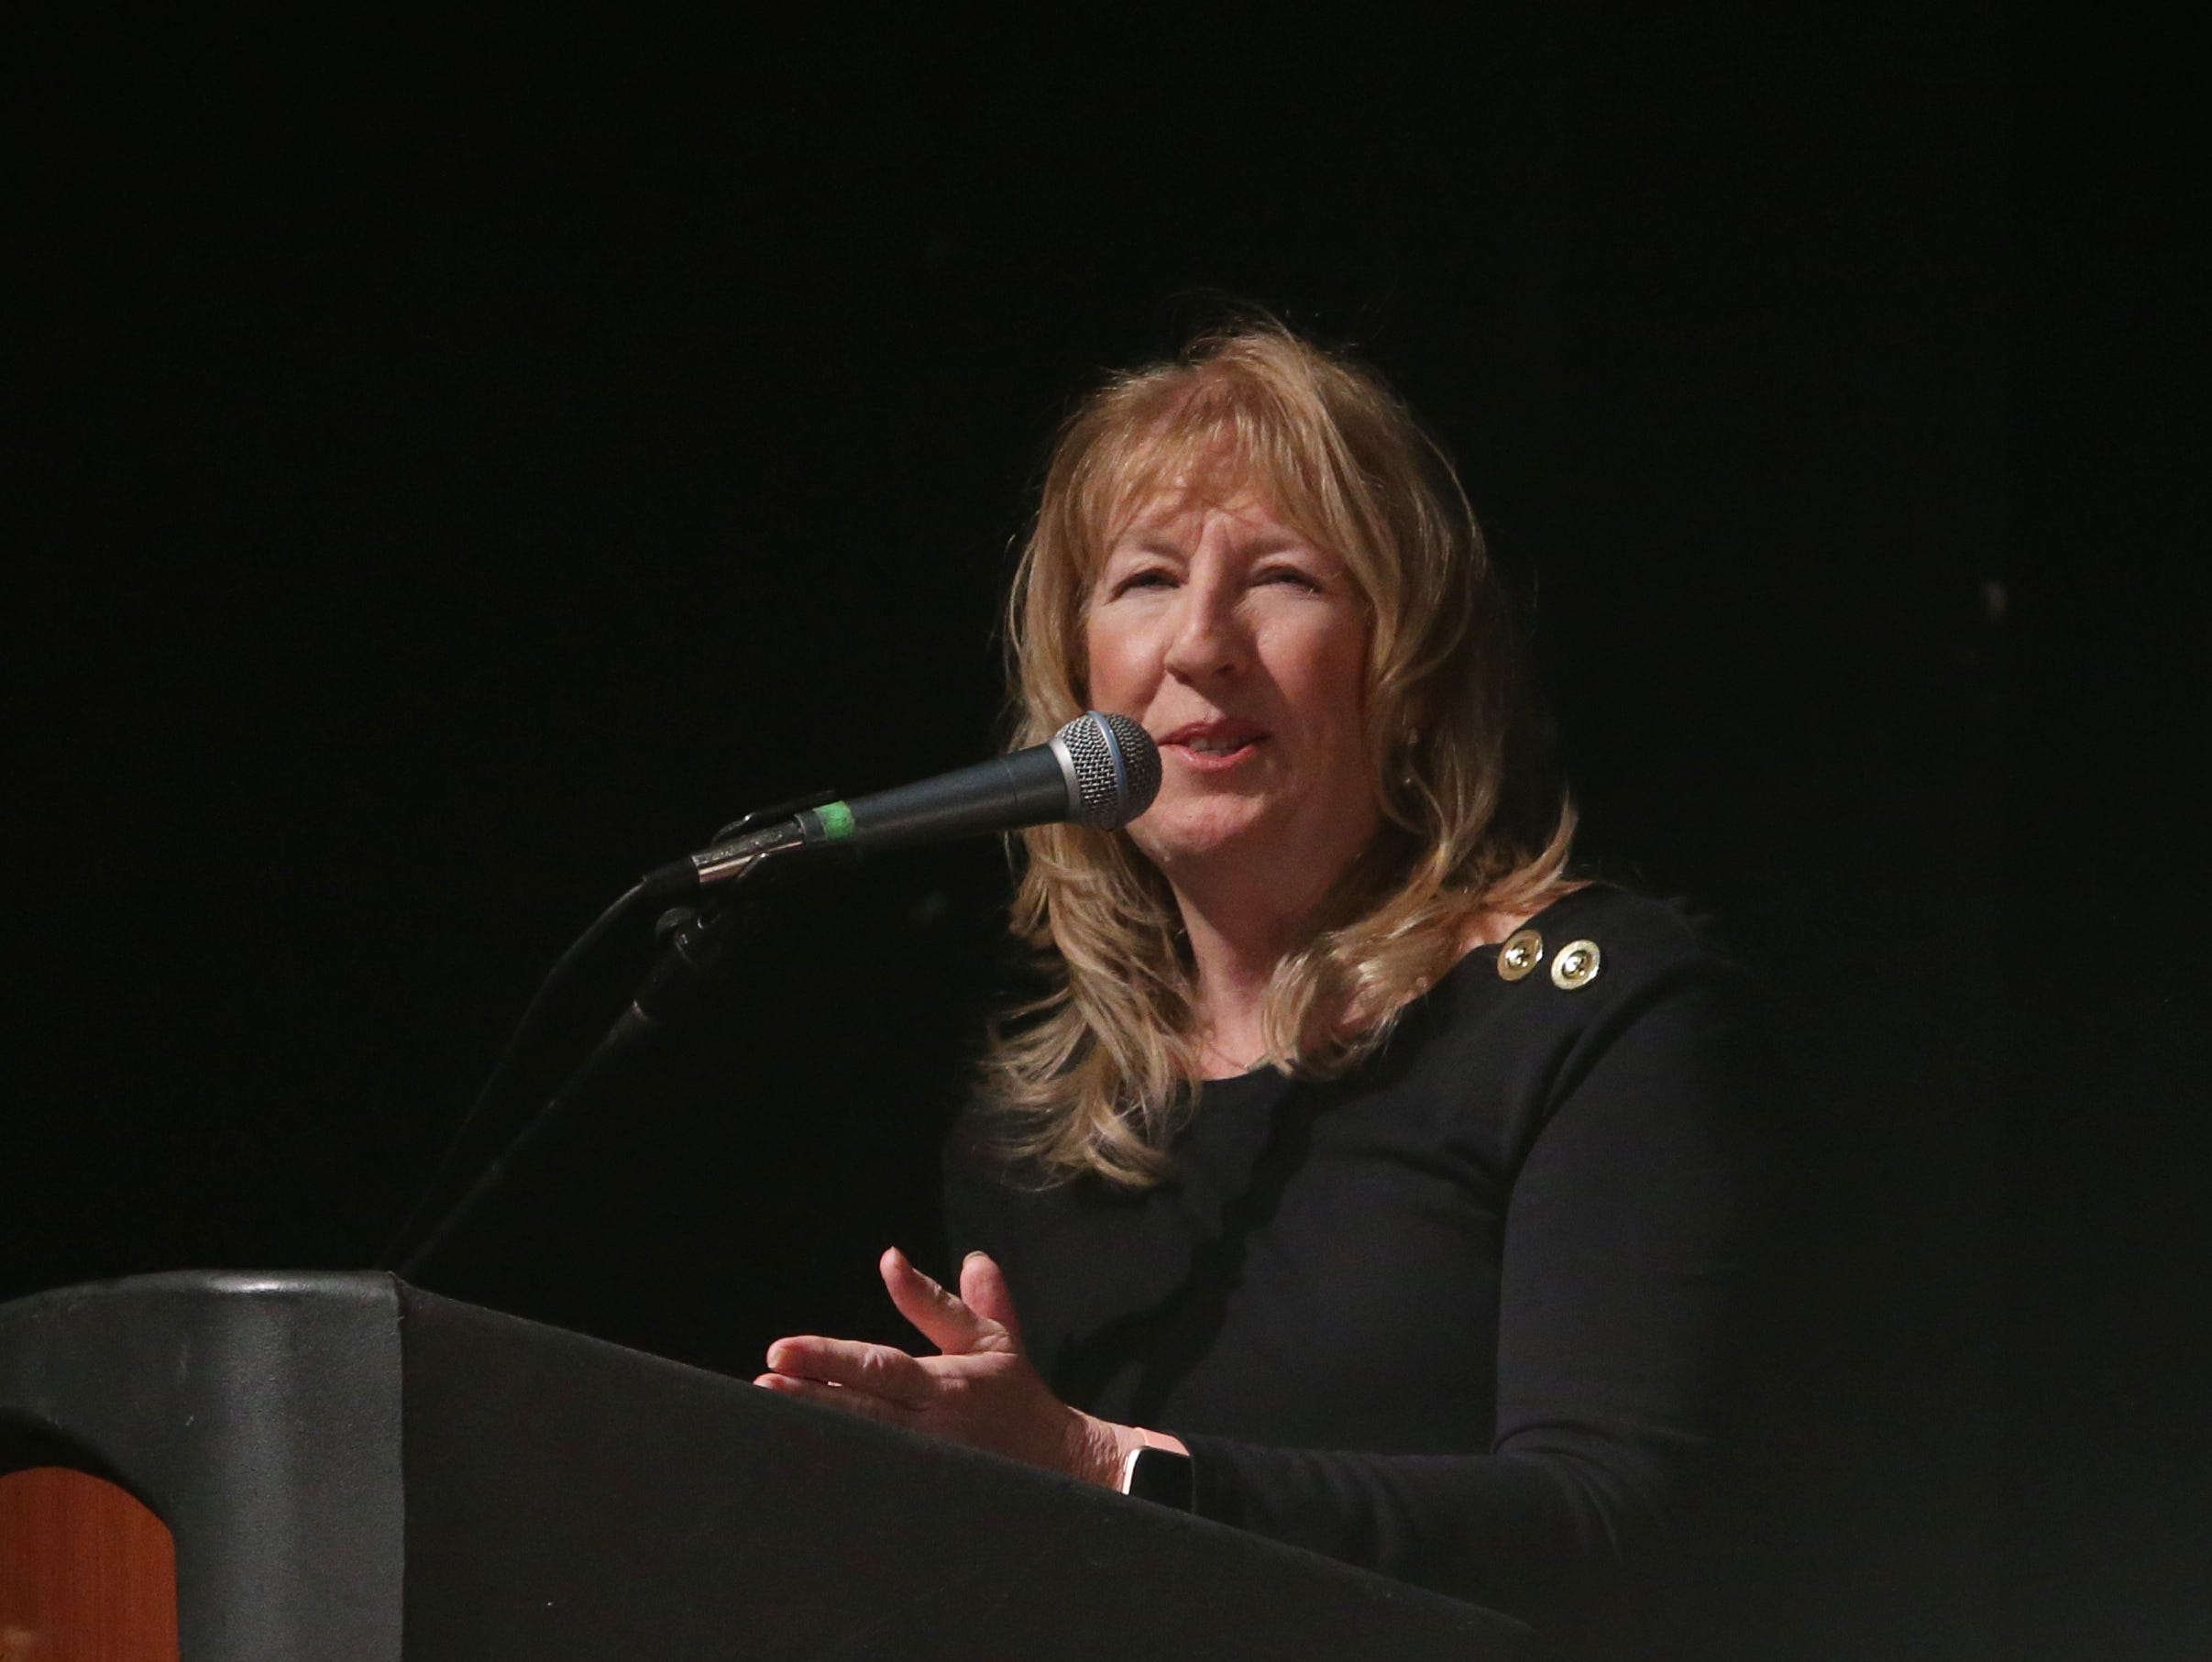 IBM's Sheila Appel speaks during the Martin Luther King Jr. Breakfast in the City of Poughkeepsie on January 25, 2019.